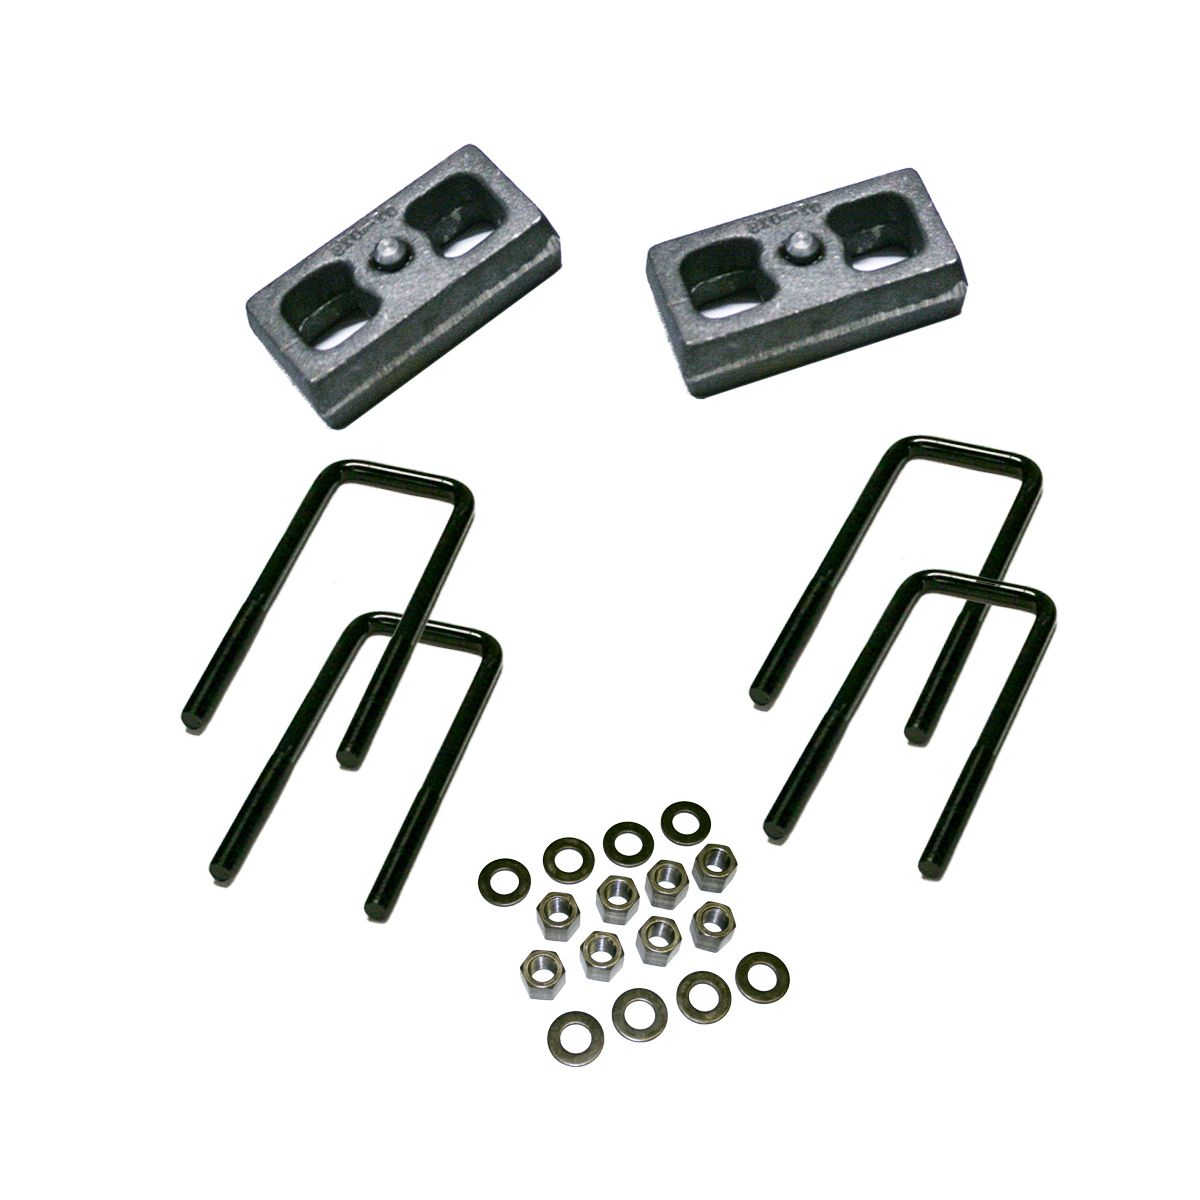 "1.5"" Rear Block Kit for 1988-1998 GM 2500/3500 8-Lug Pickup and 1992-1999 2500 Suburban"